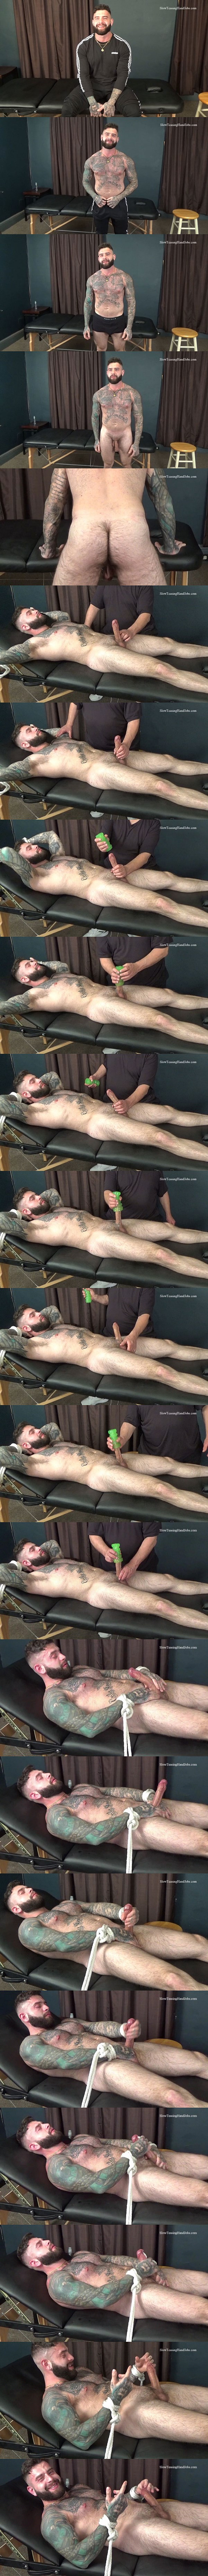 Slowteasinghandjobs - inked macho stud, straight constructon worker Joey (aka Giovanni) gets slowly teased and edged before Joey blows his white jizz 02